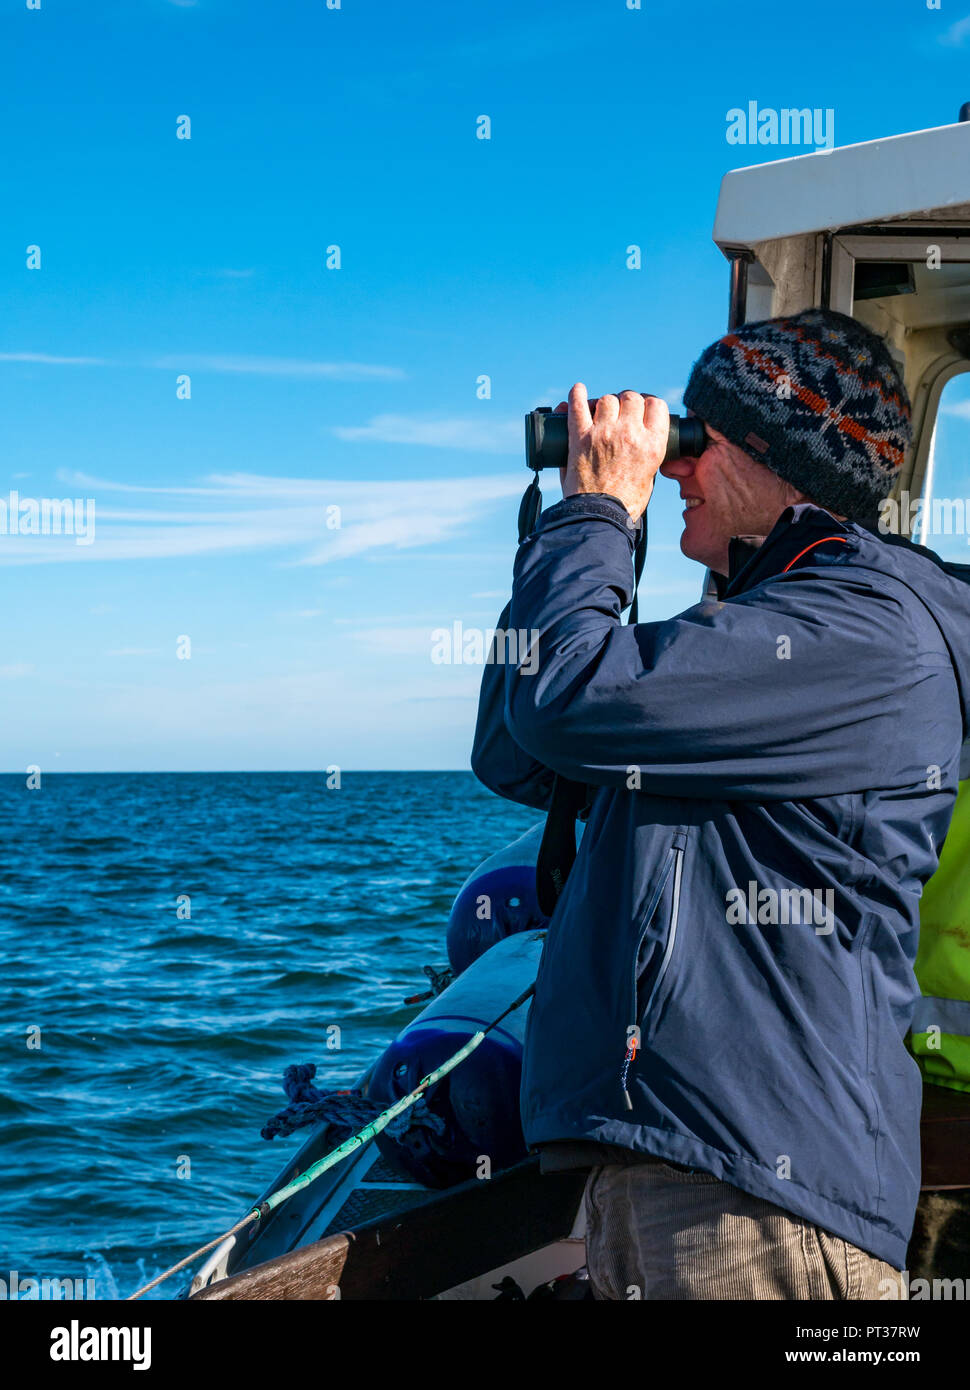 Man looking through binoculars on boat in Firth of Forth, East Lothian, Scotland, UK - Stock Image